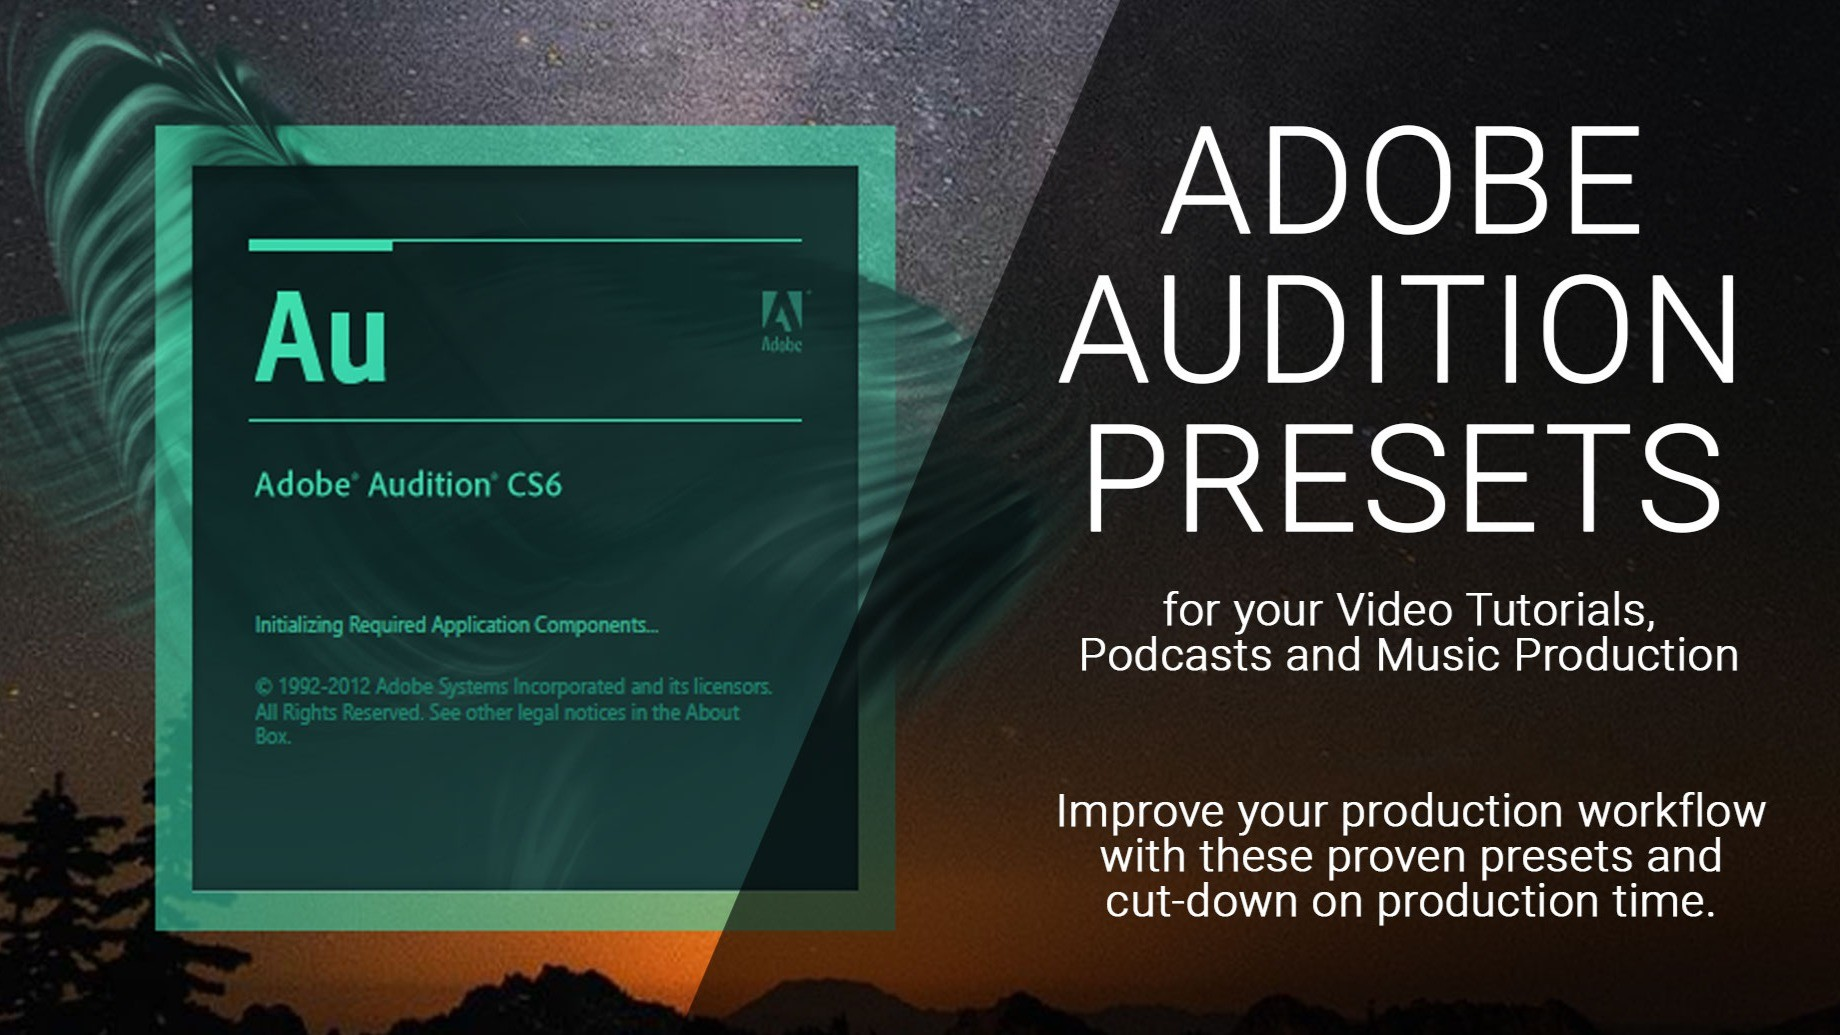 AppSumo Deal for Adobe Audition Presets for Tutorials, Podcasts and Music Production